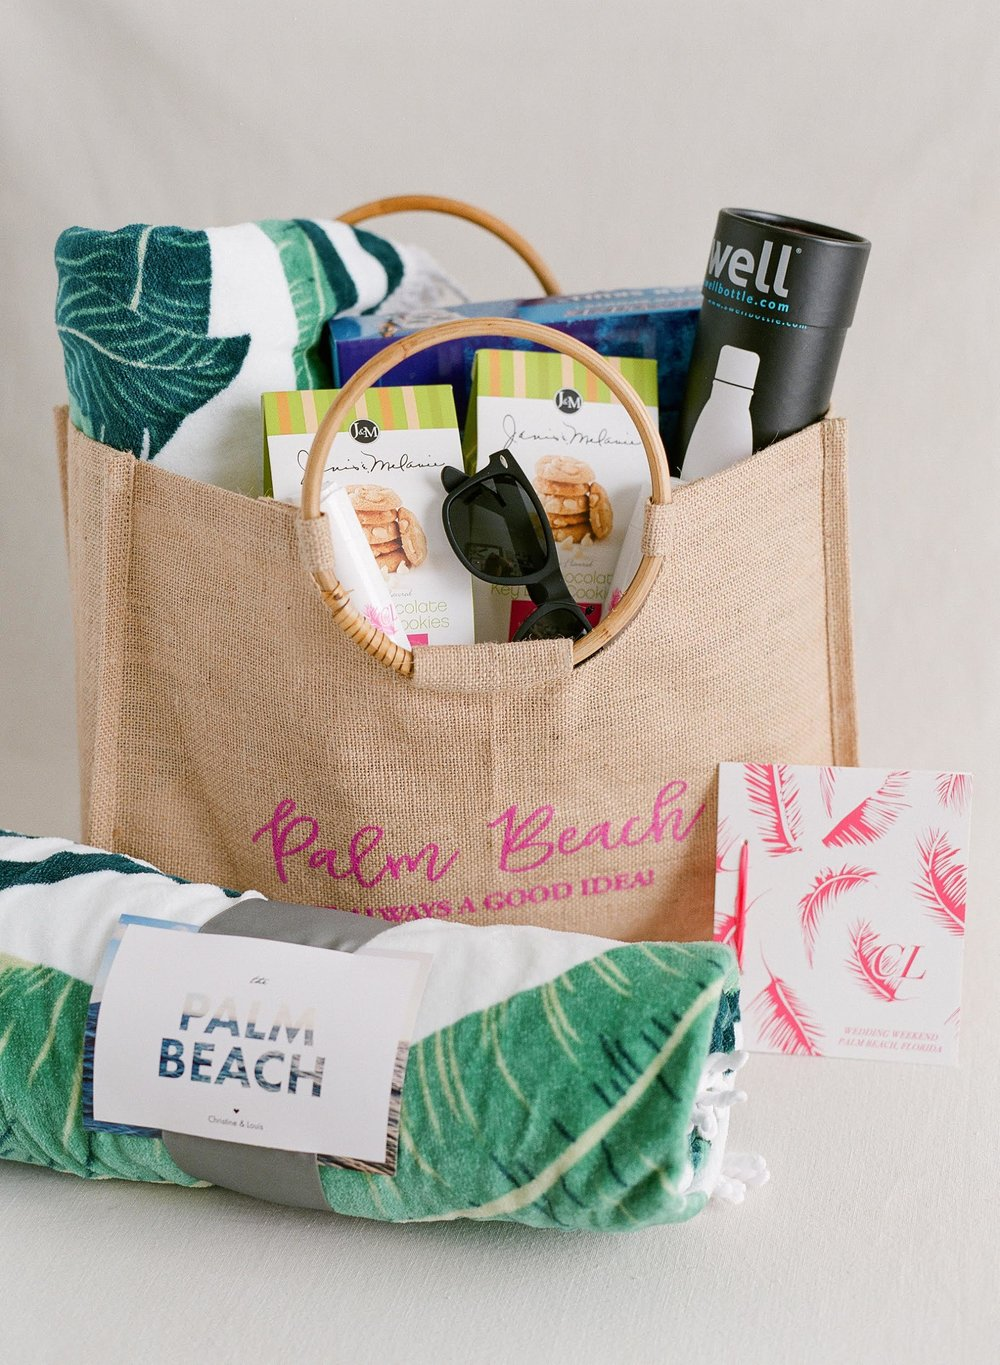 BEACH BAG - Custom Design Available -  $15